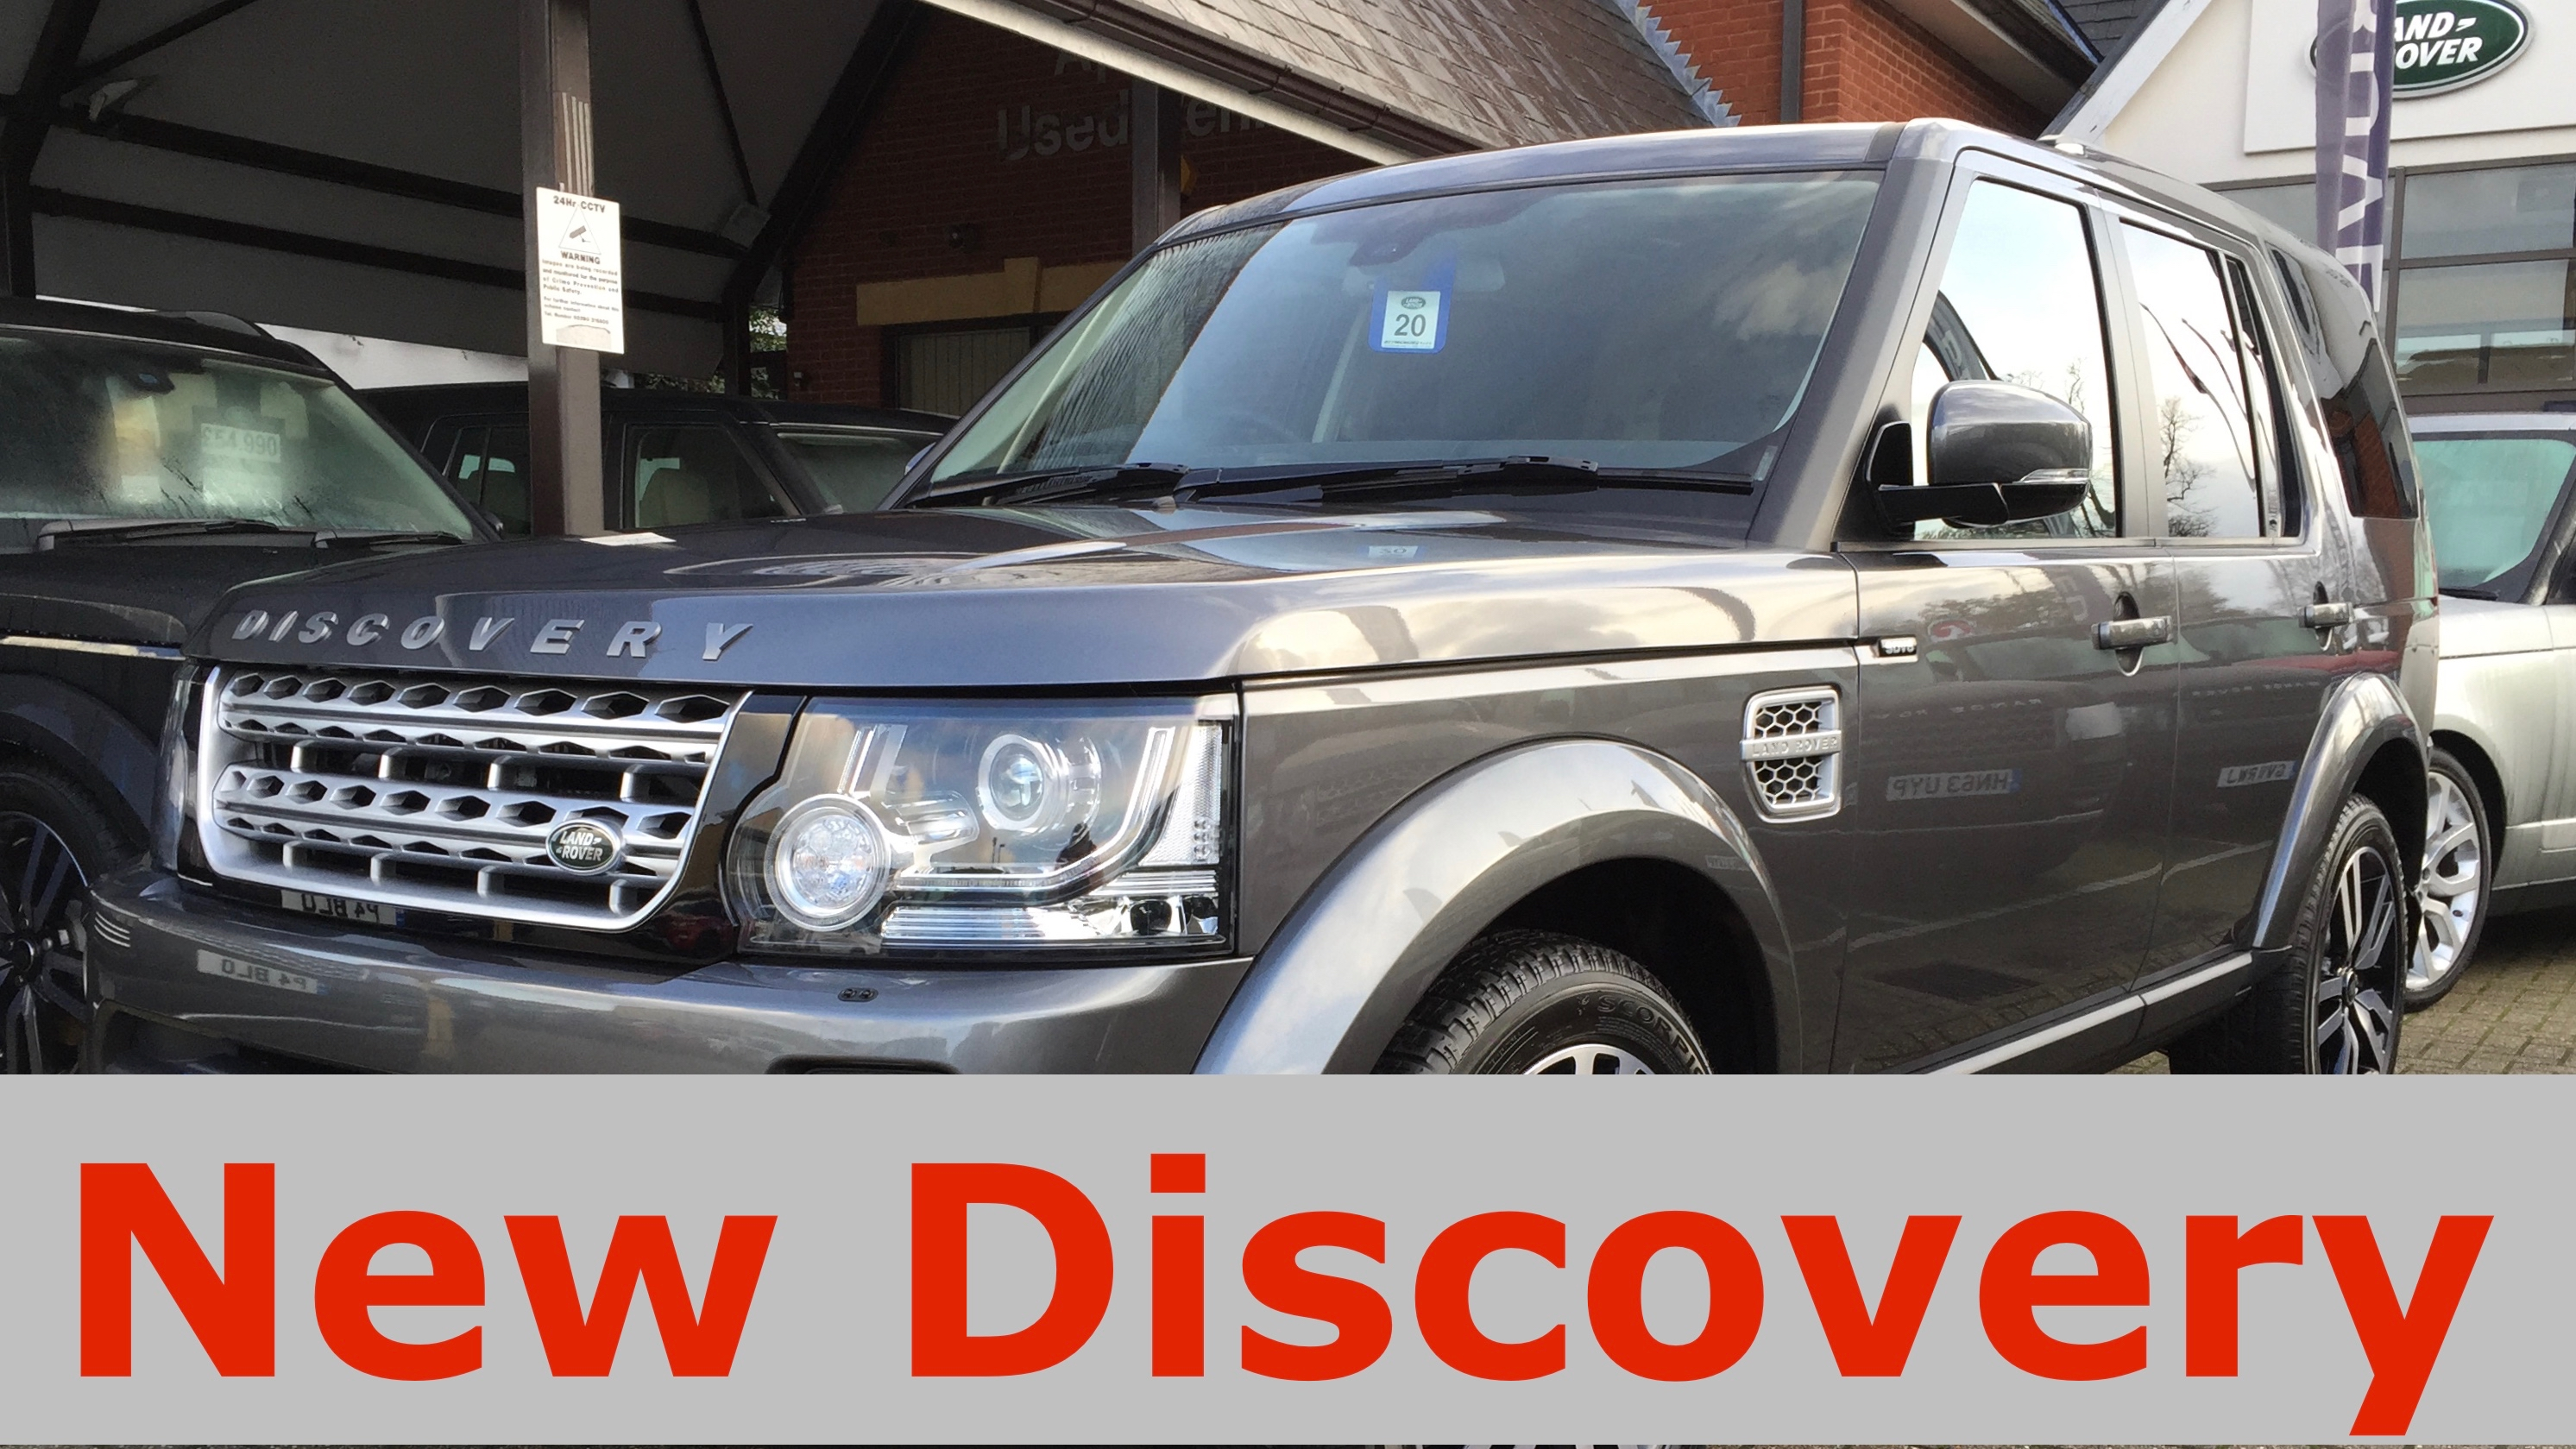 Image of a new grey Land Rover Discovery parked outside a Land Rover dealership with a Red on grey text lower third stating New Discovery